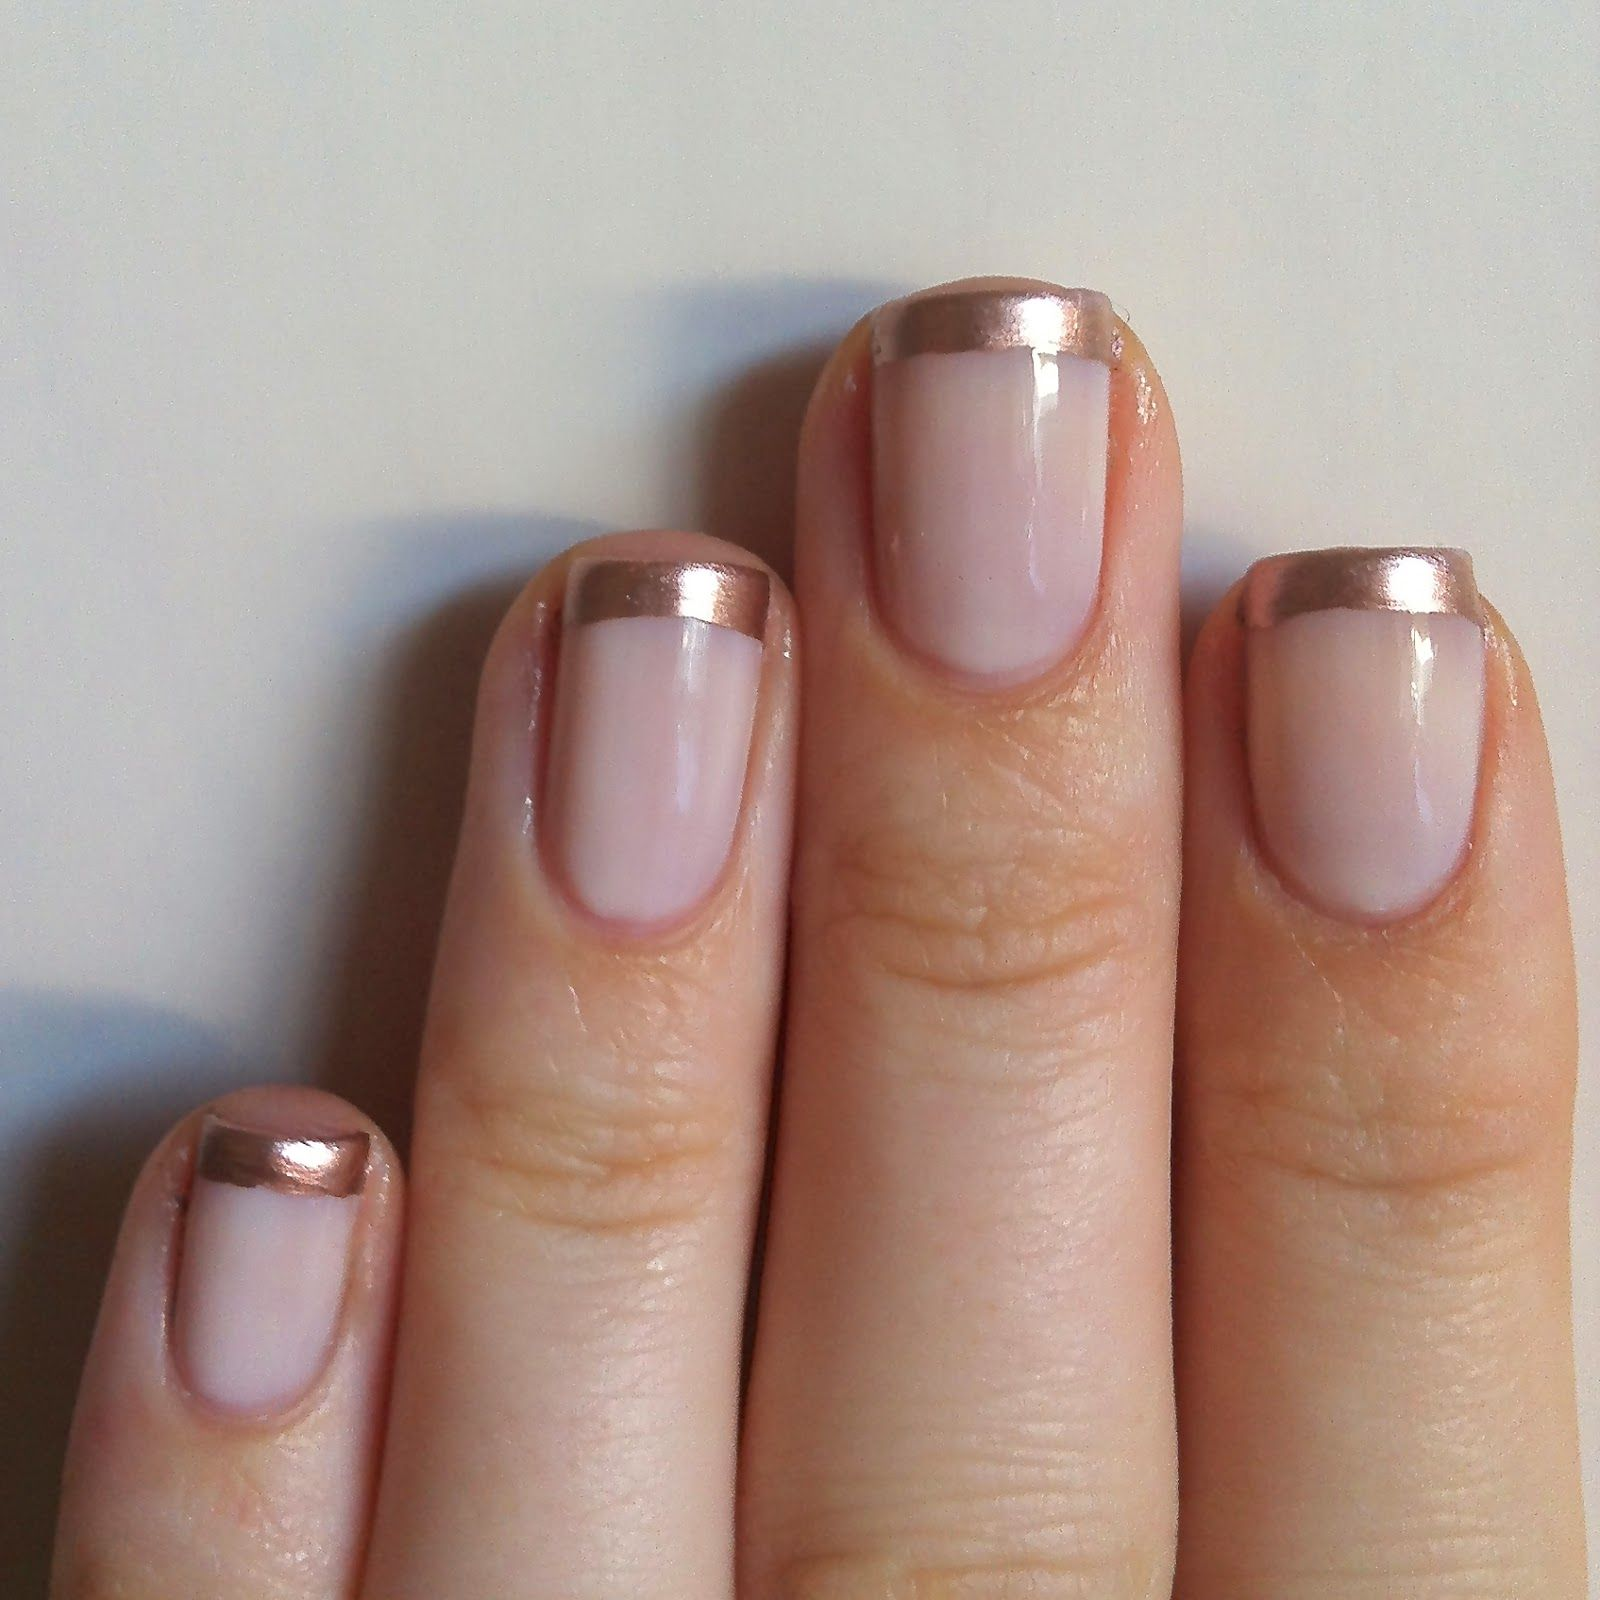 Neutral and gold nail polish, French Manicure style. Love it ...